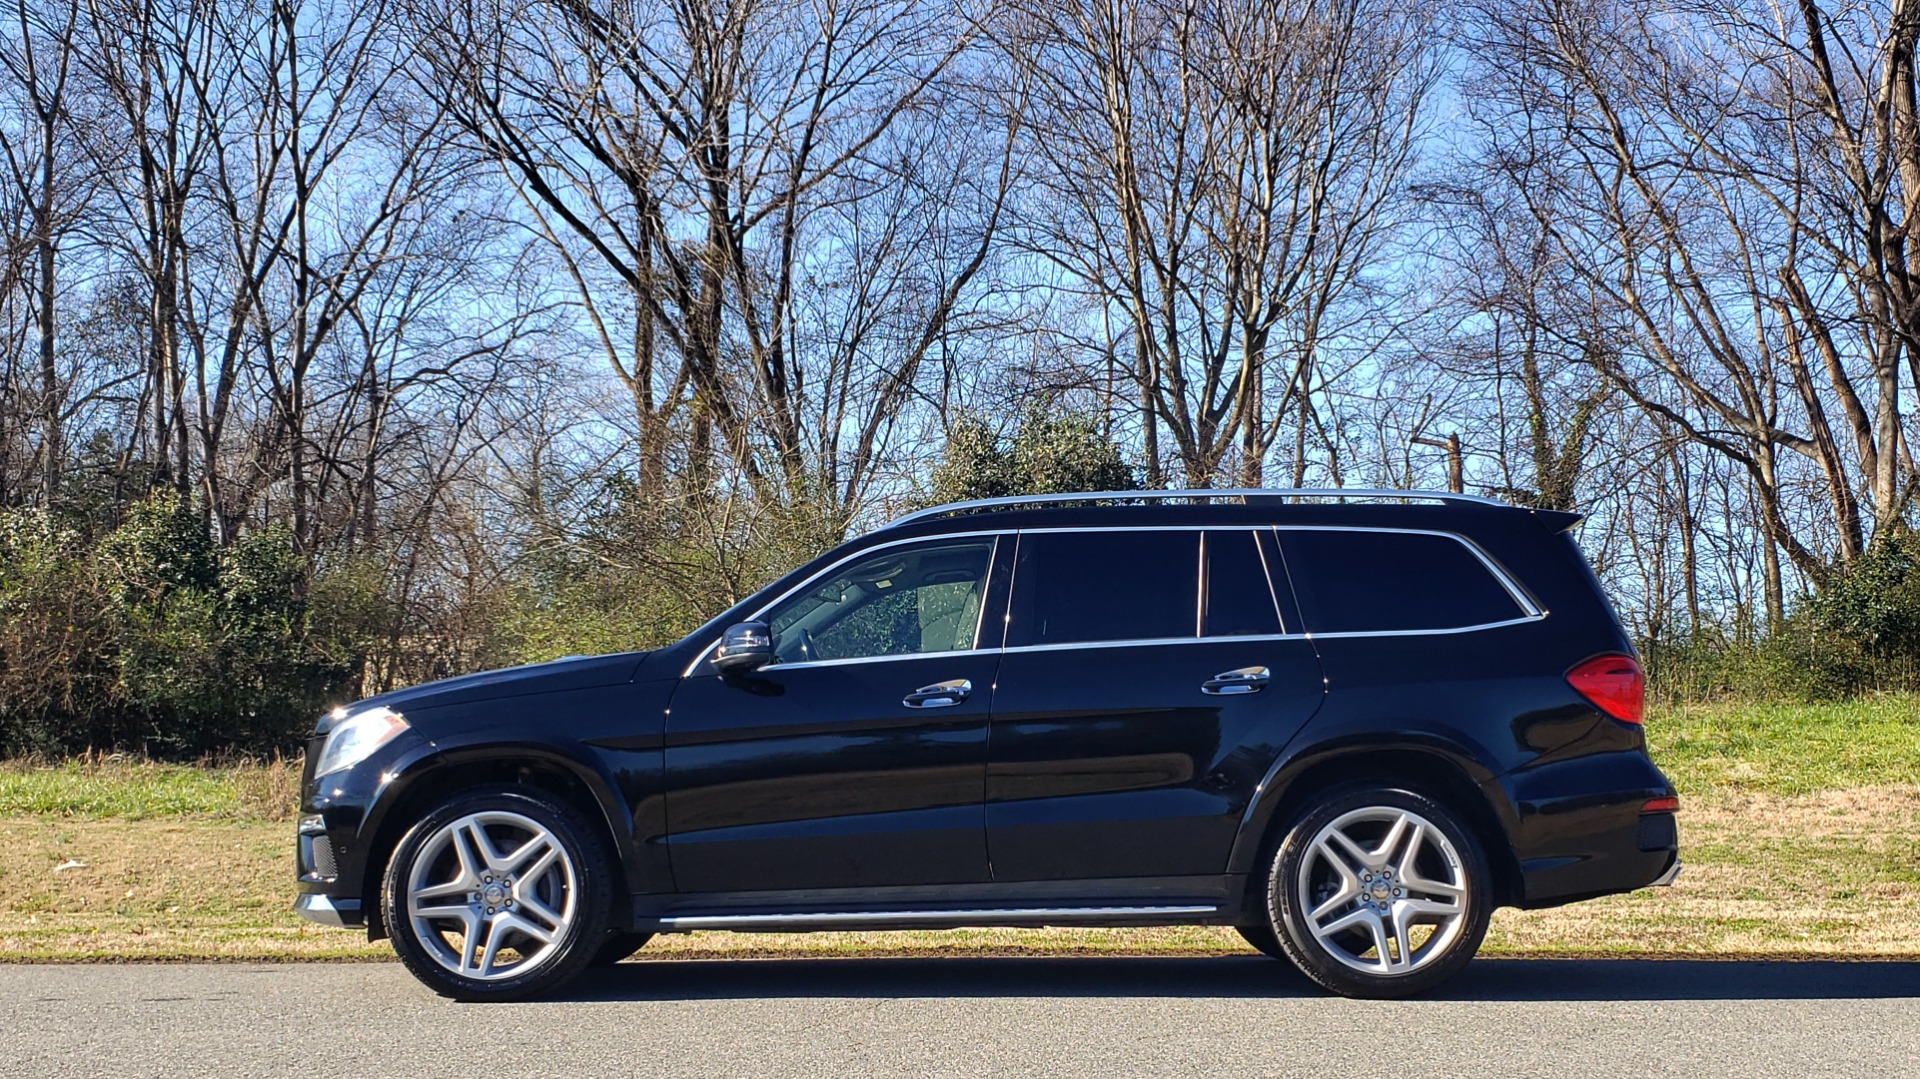 Used 2015 Mercedes-Benz GL-Class GL 550 4MATIC / DRVR ASST / PANO-ROOF / DESIGNO / REARVIEW for sale Sold at Formula Imports in Charlotte NC 28227 2